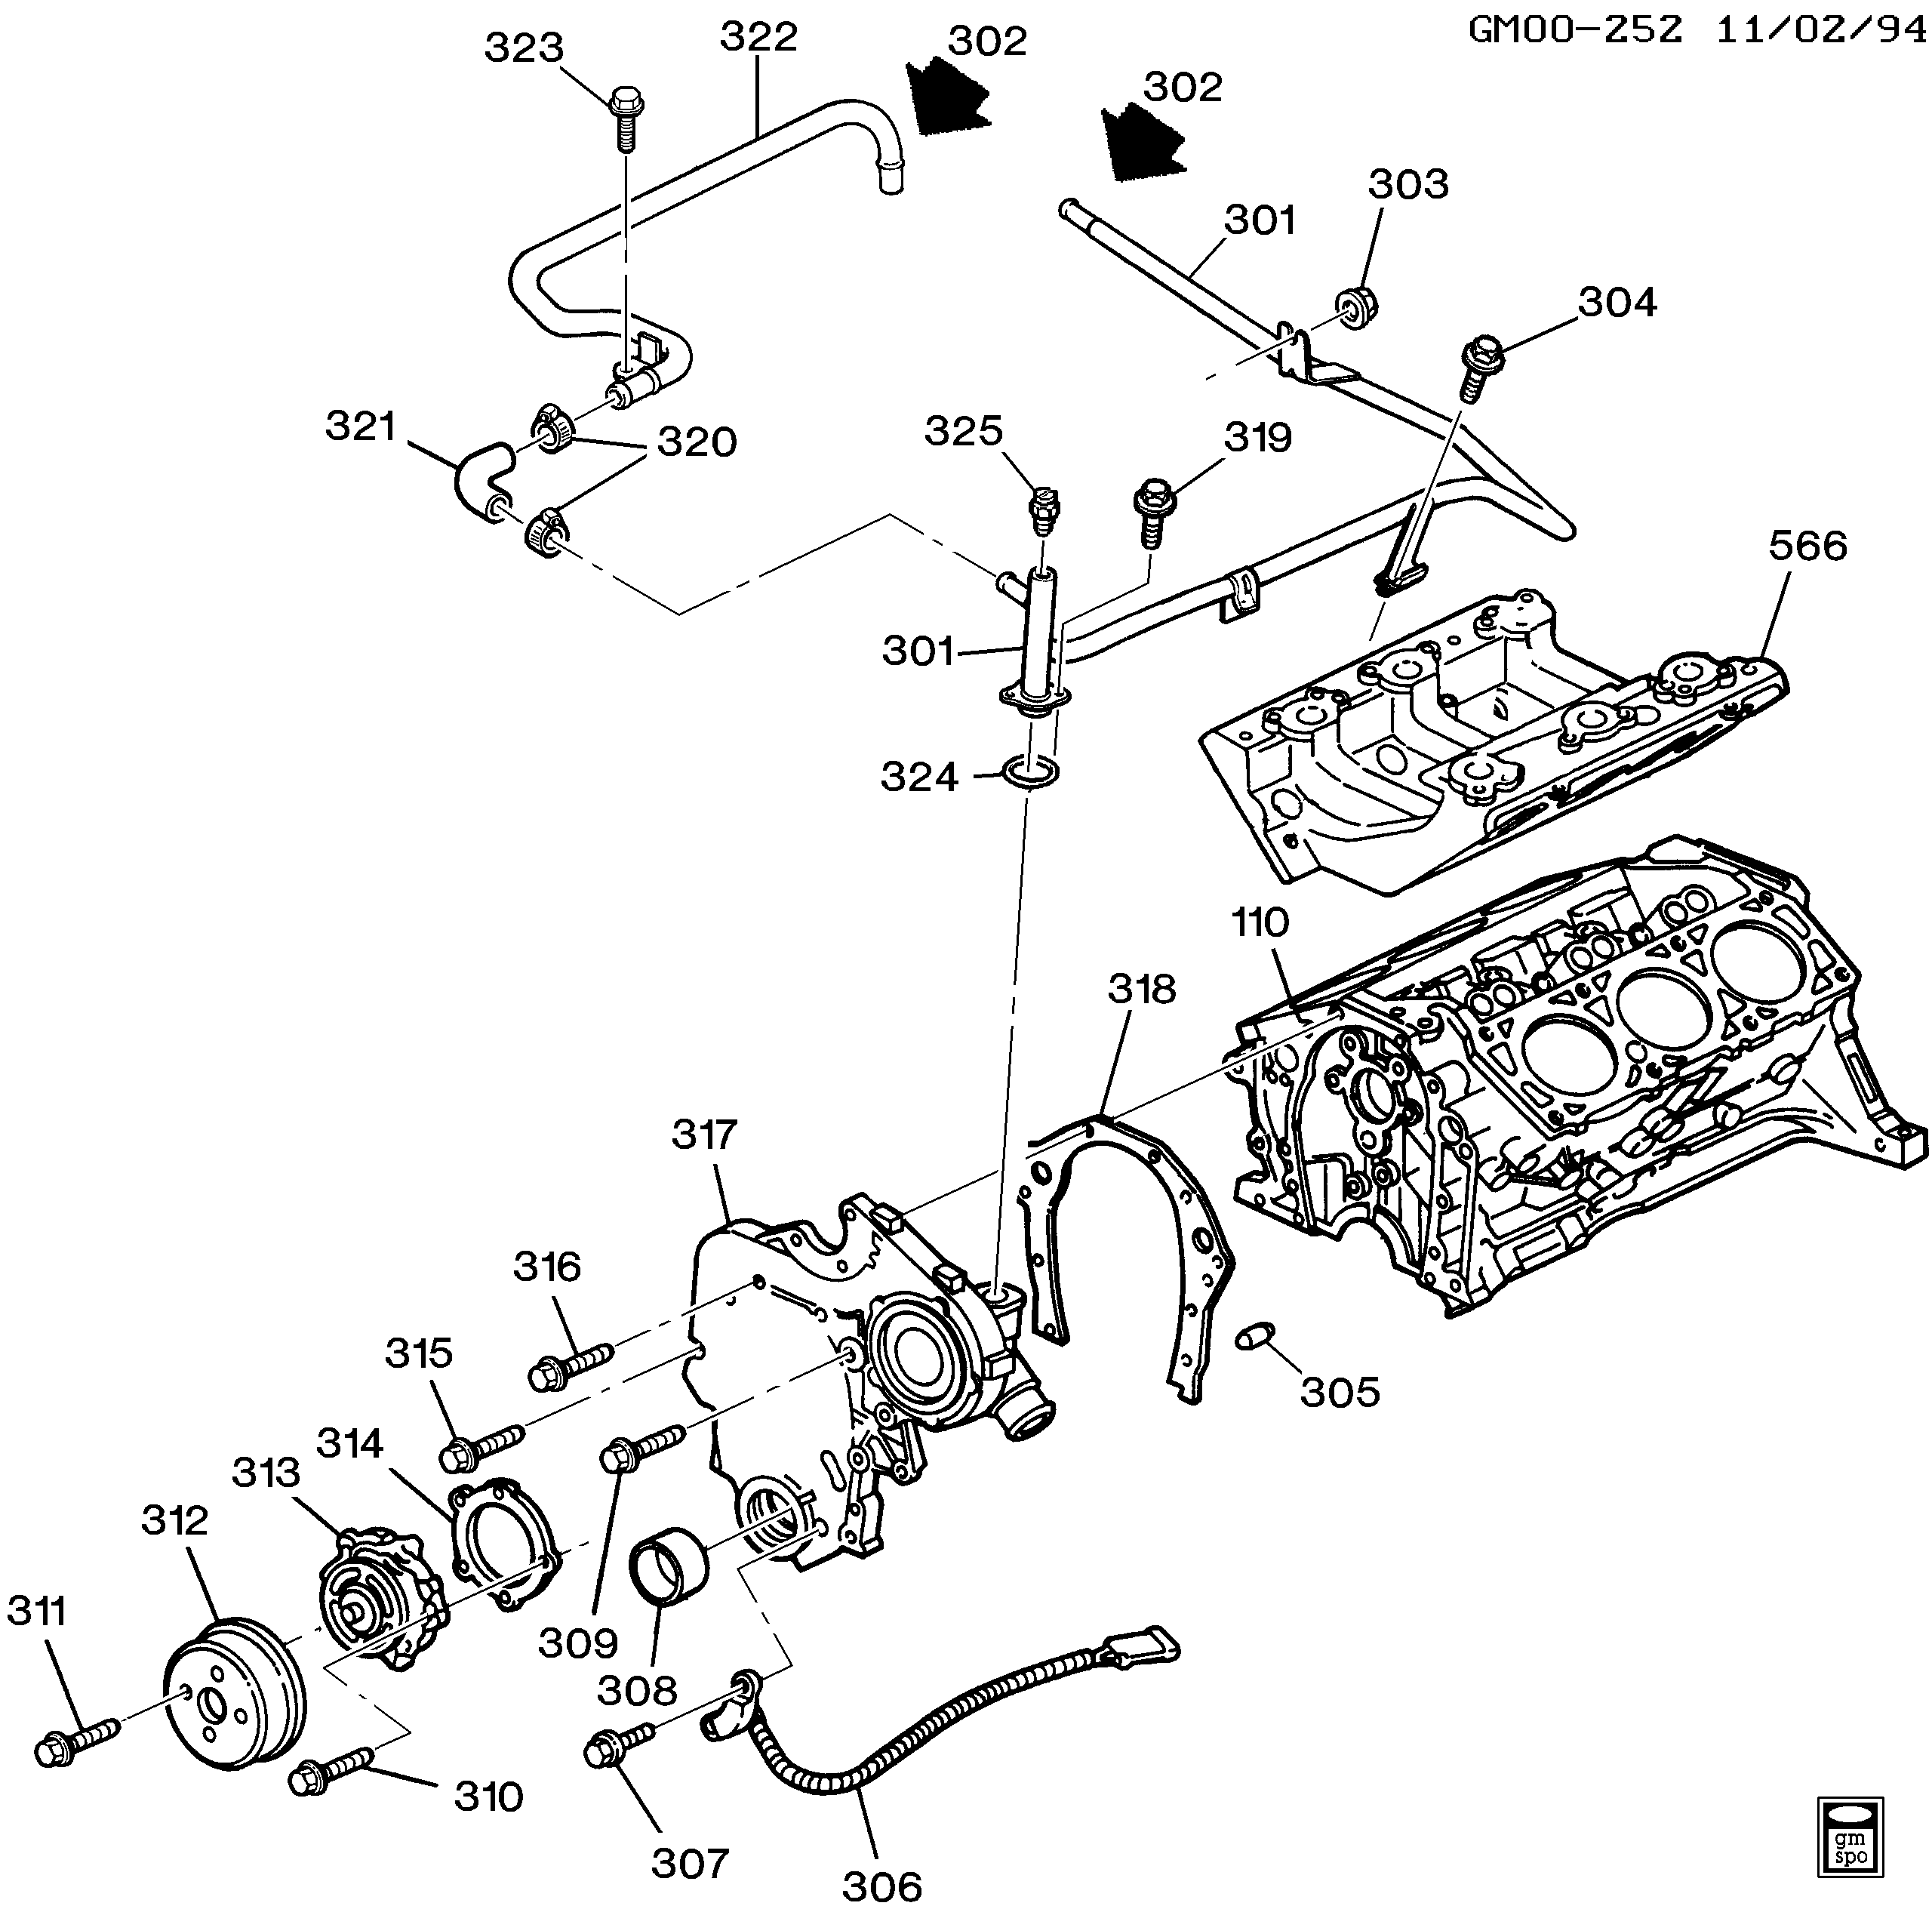 1995-1999 w engine asm-3.1l v6 part 3 front cover & cooling (l82/3.1m) chevrolet  lumina lumina  catalog chevrolet - 7zap